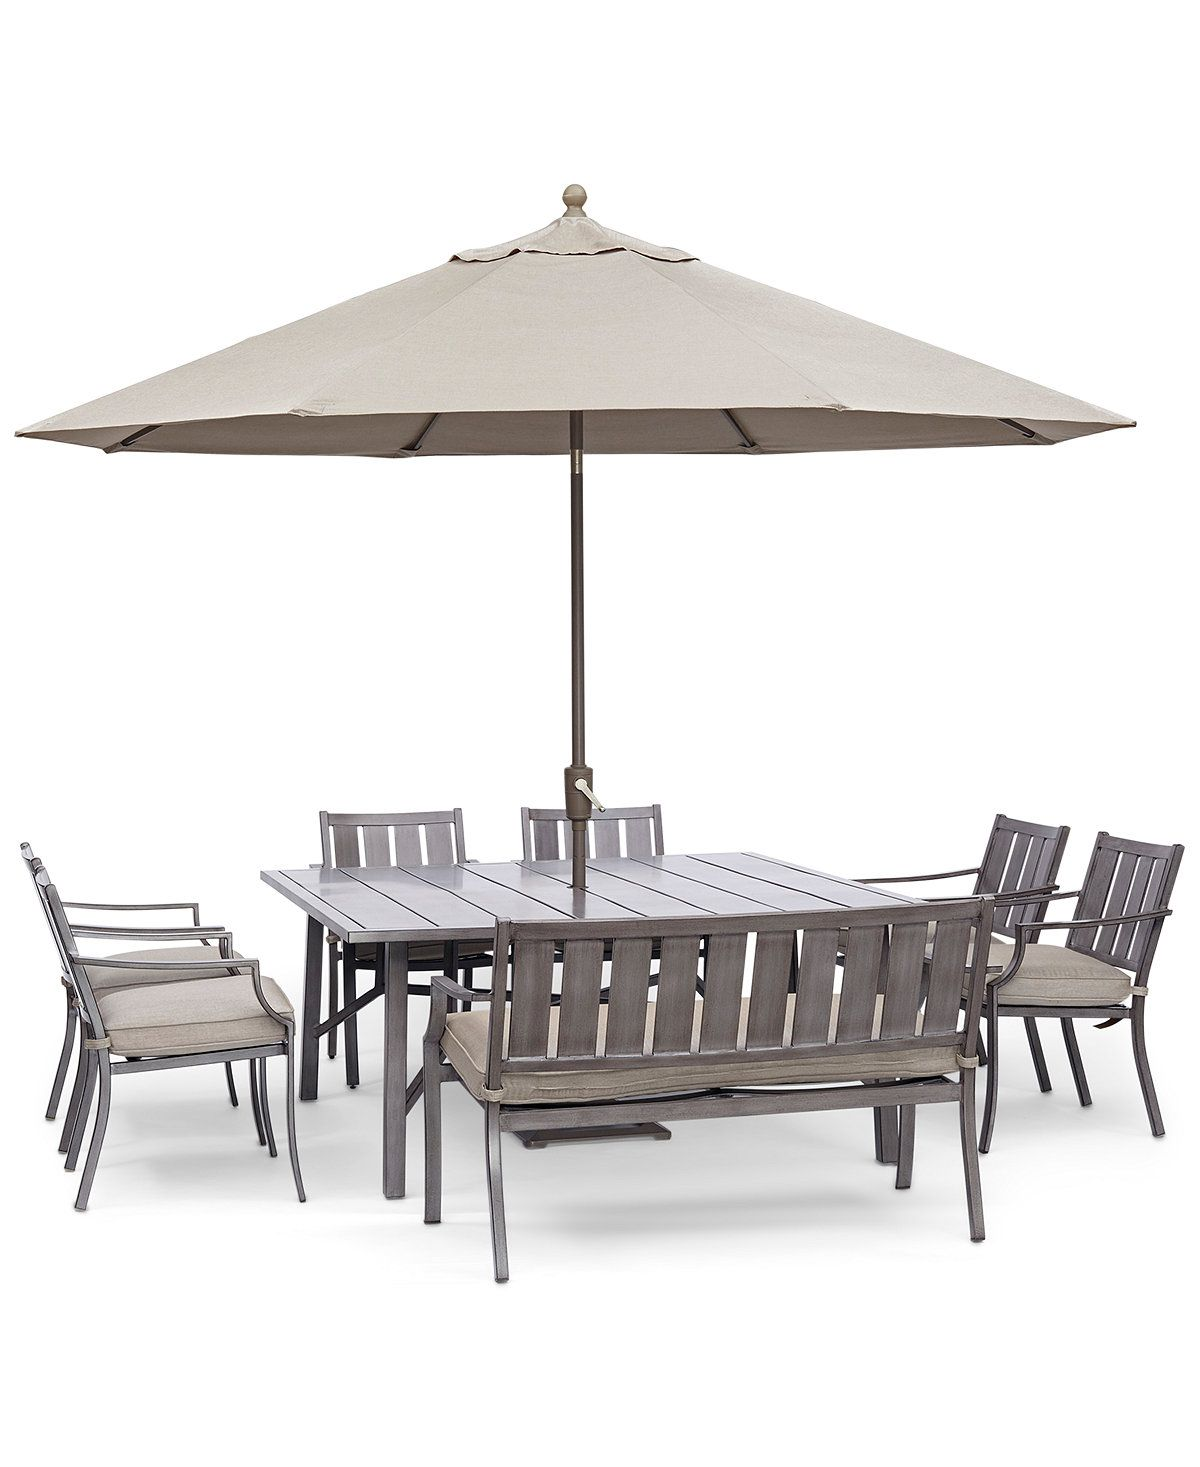 Furniture Wayland Outdoor Aluminum 8 Pc Dining Set 64 Square Dining Tables Square Patio Table Patio Furniture Patio dining sets with umbrella